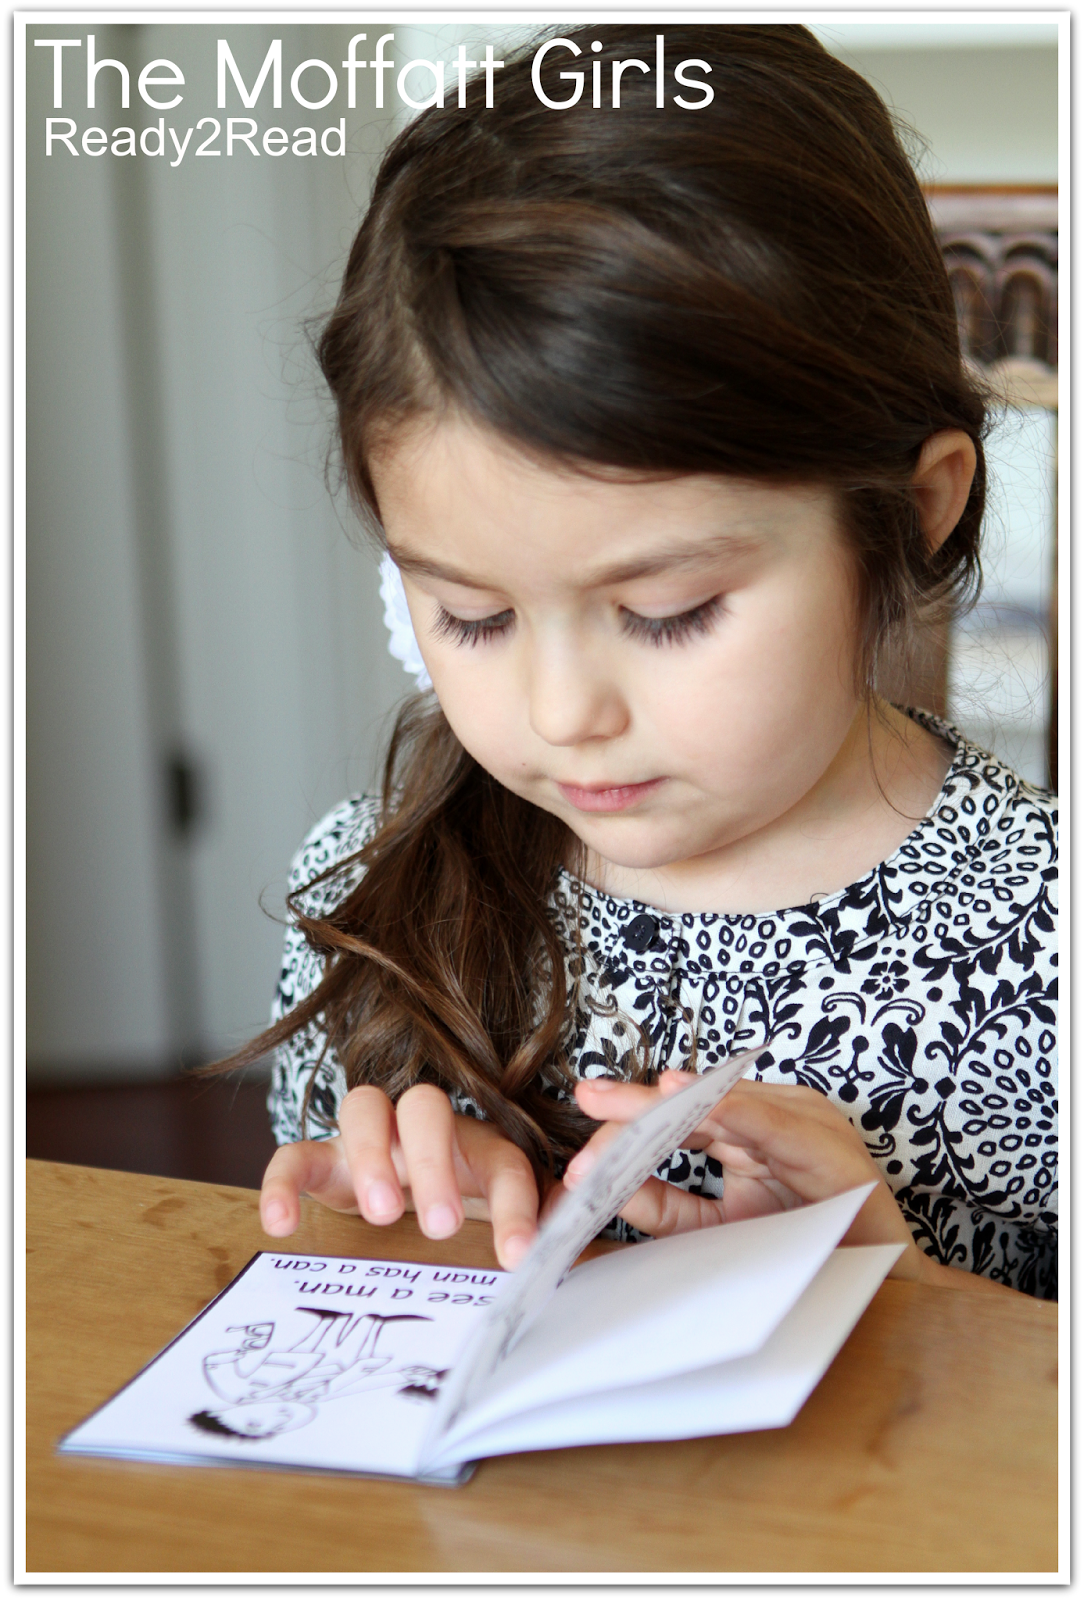 Children love to make mini books!  It's a great way to build confidence in reading.